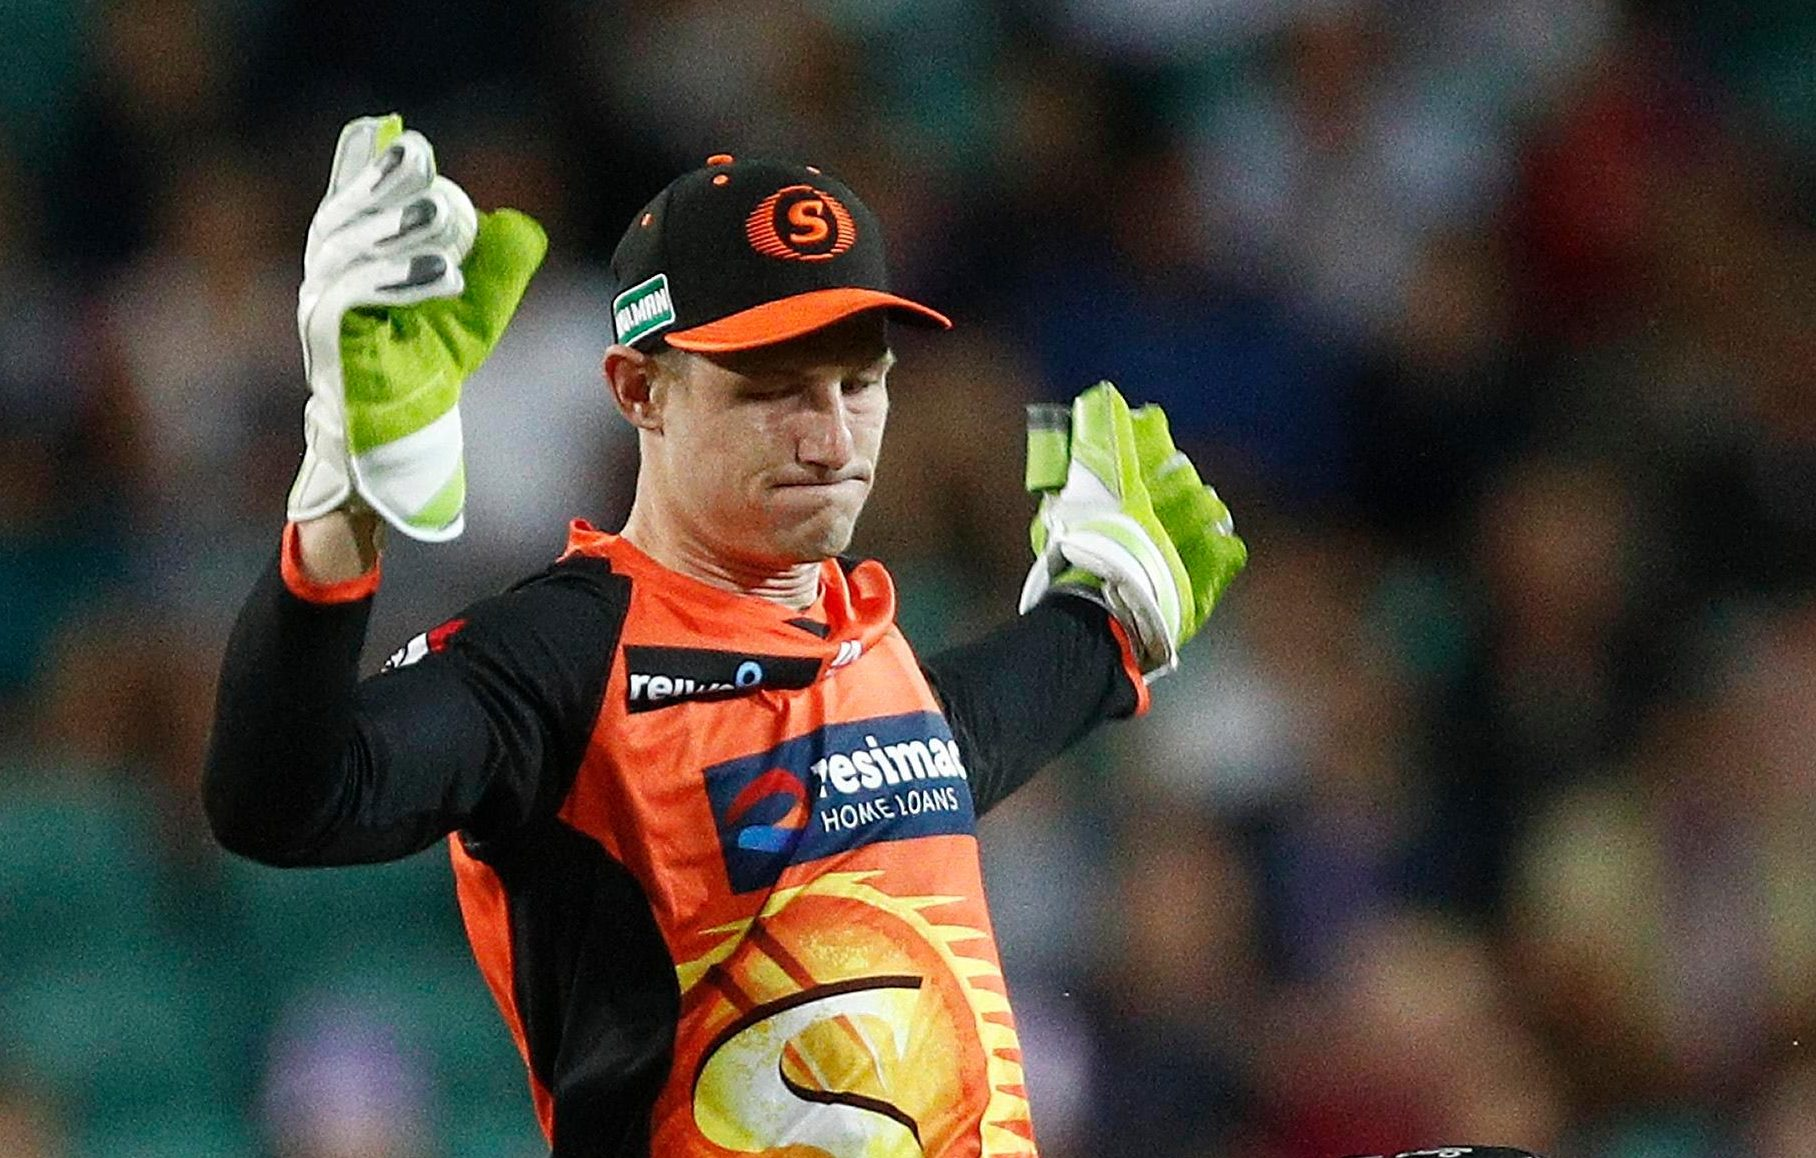 Cameron Bancroft returned from his ball-tampering ban to play for Perth Scorchers today